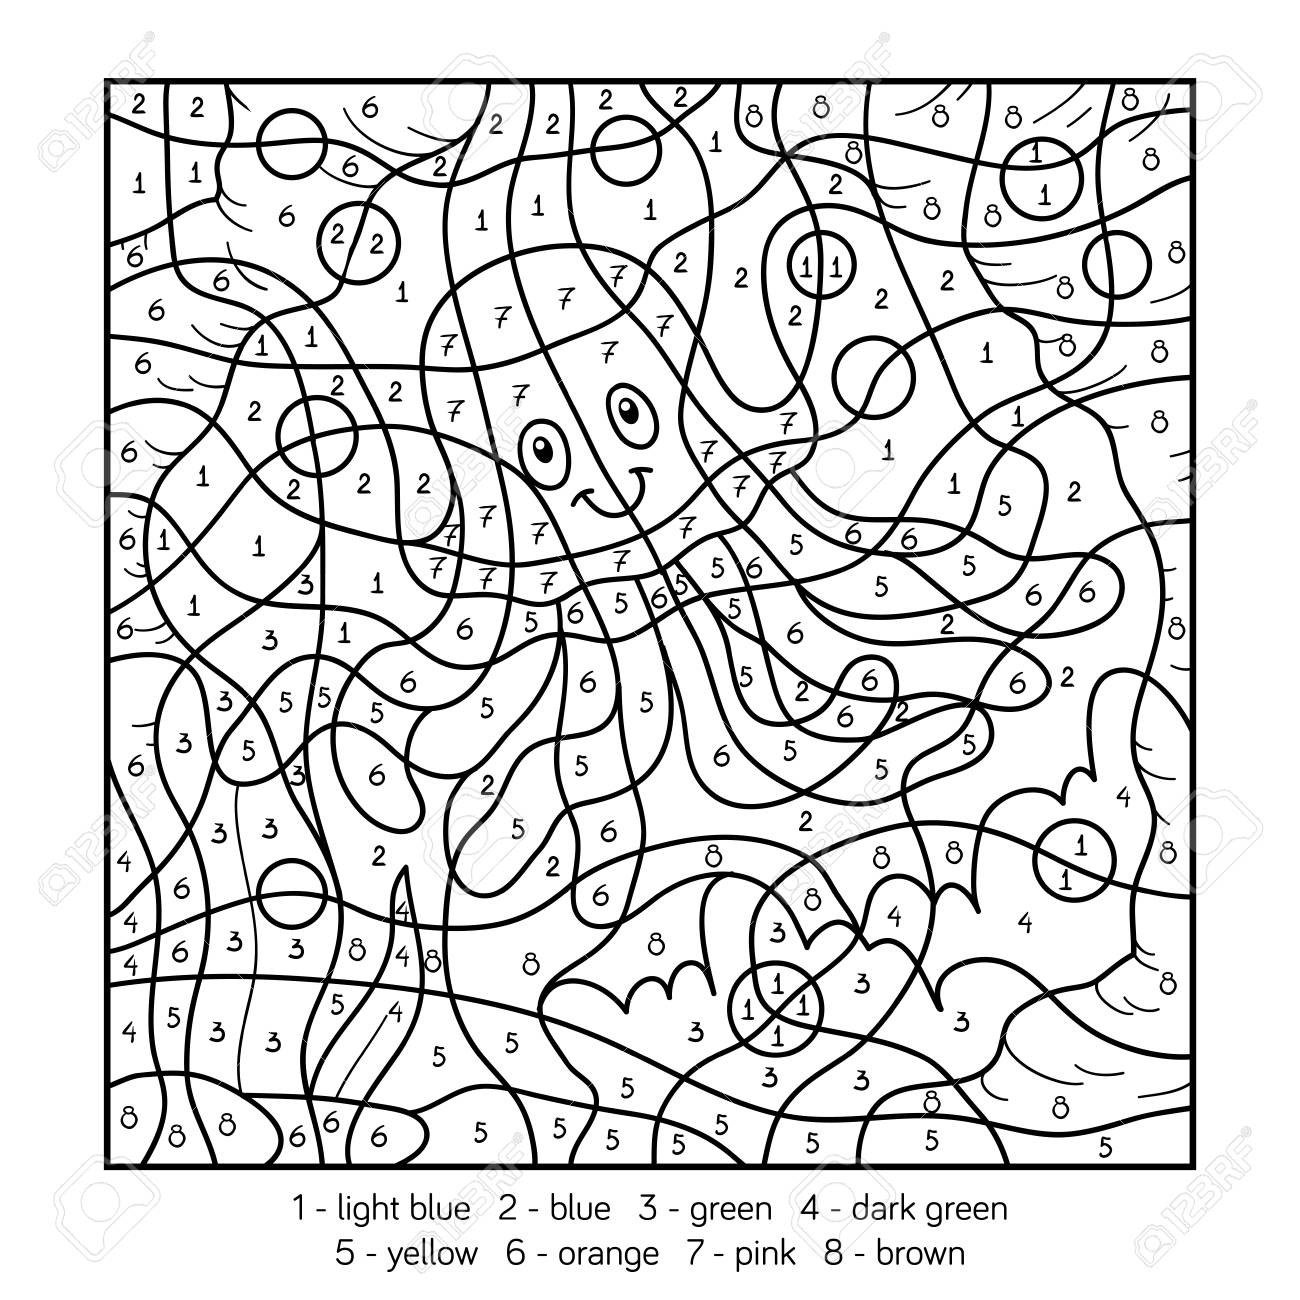 free color by number free color by number pictures activities free preschool free number by color